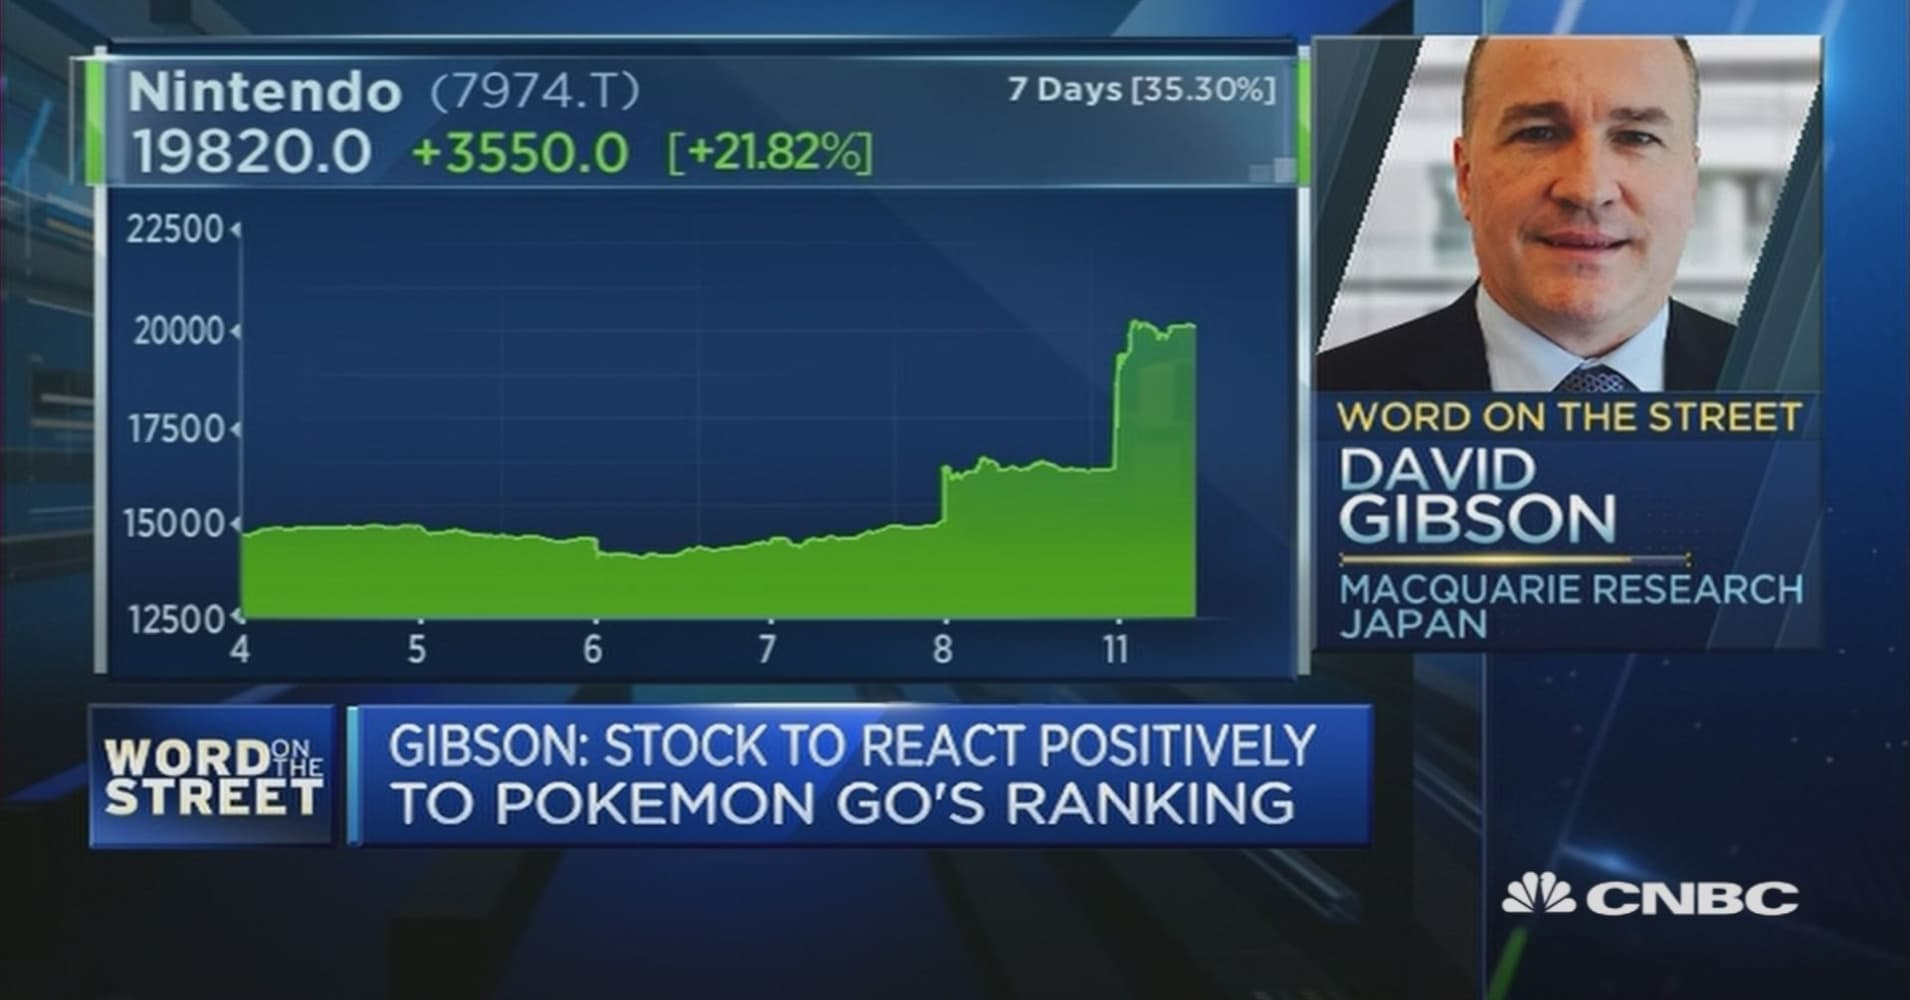 should investors be this optimistic about pokemon go?